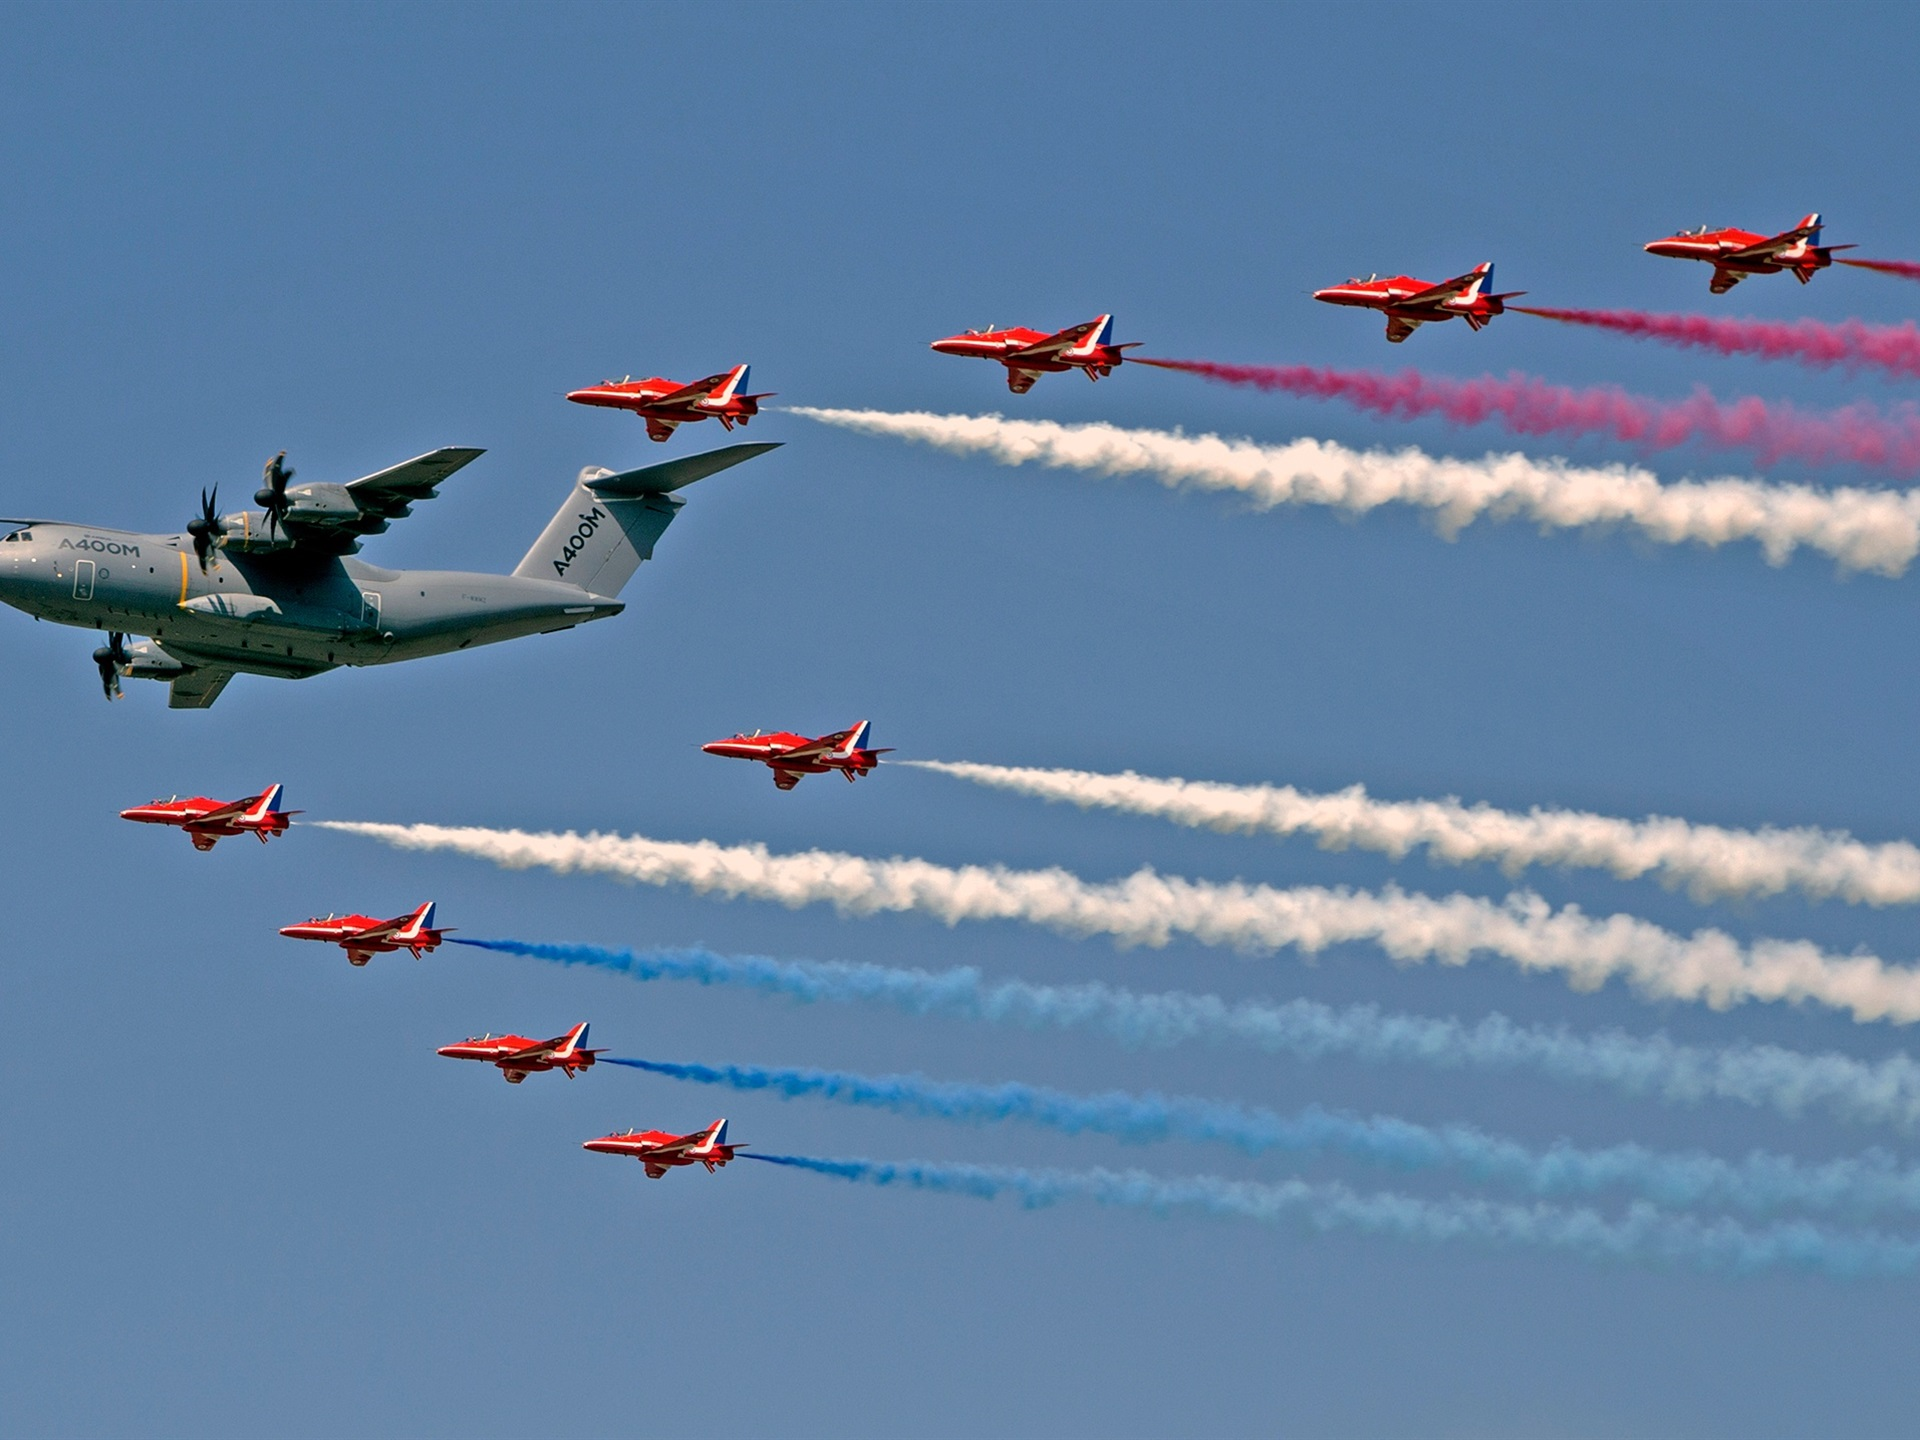 Wallpaper Royal Air Force, Red Arrows fighters, transport